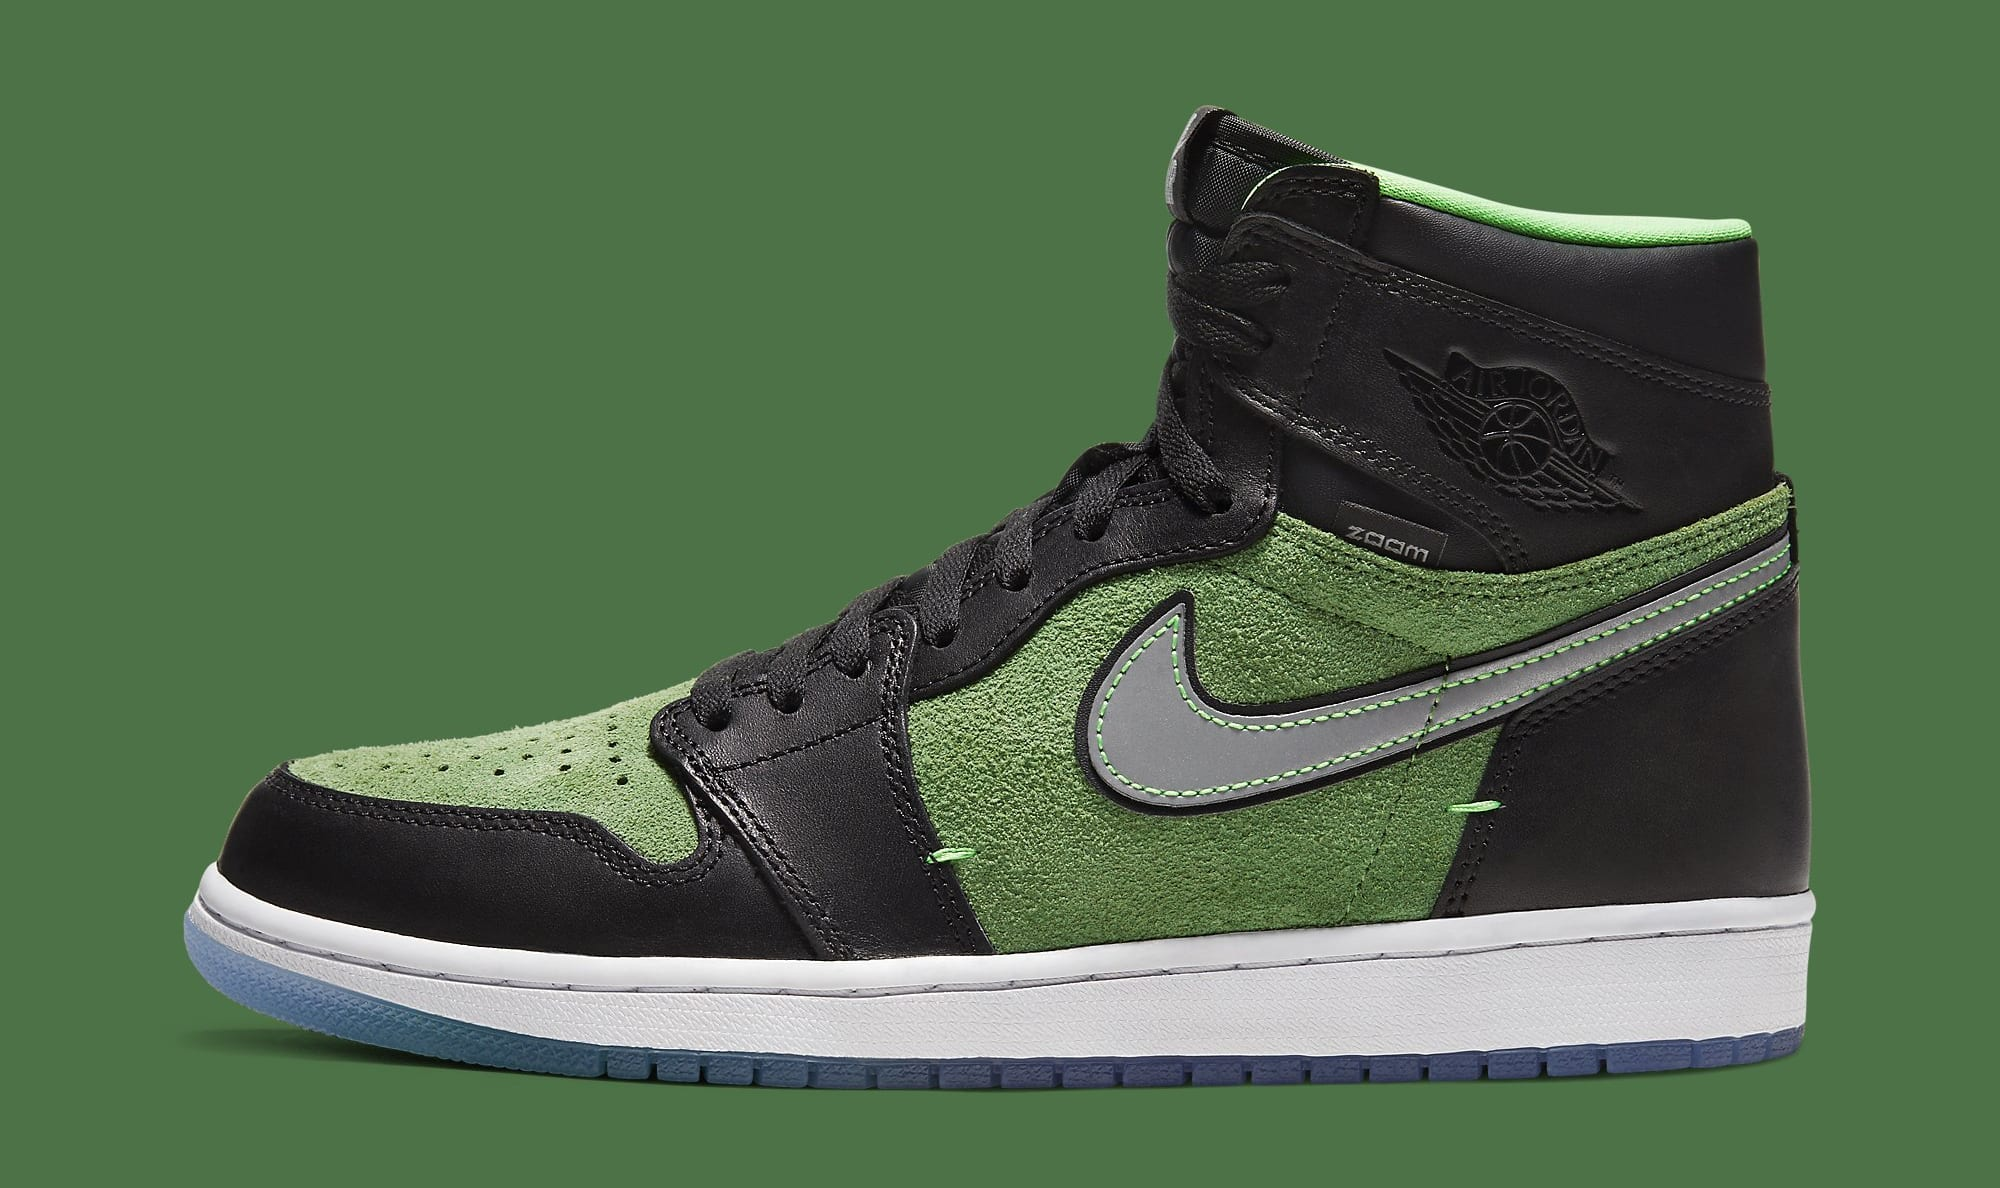 Air Jordan 1 High Zoom 'Rage Green' CK6637-002 Lateral